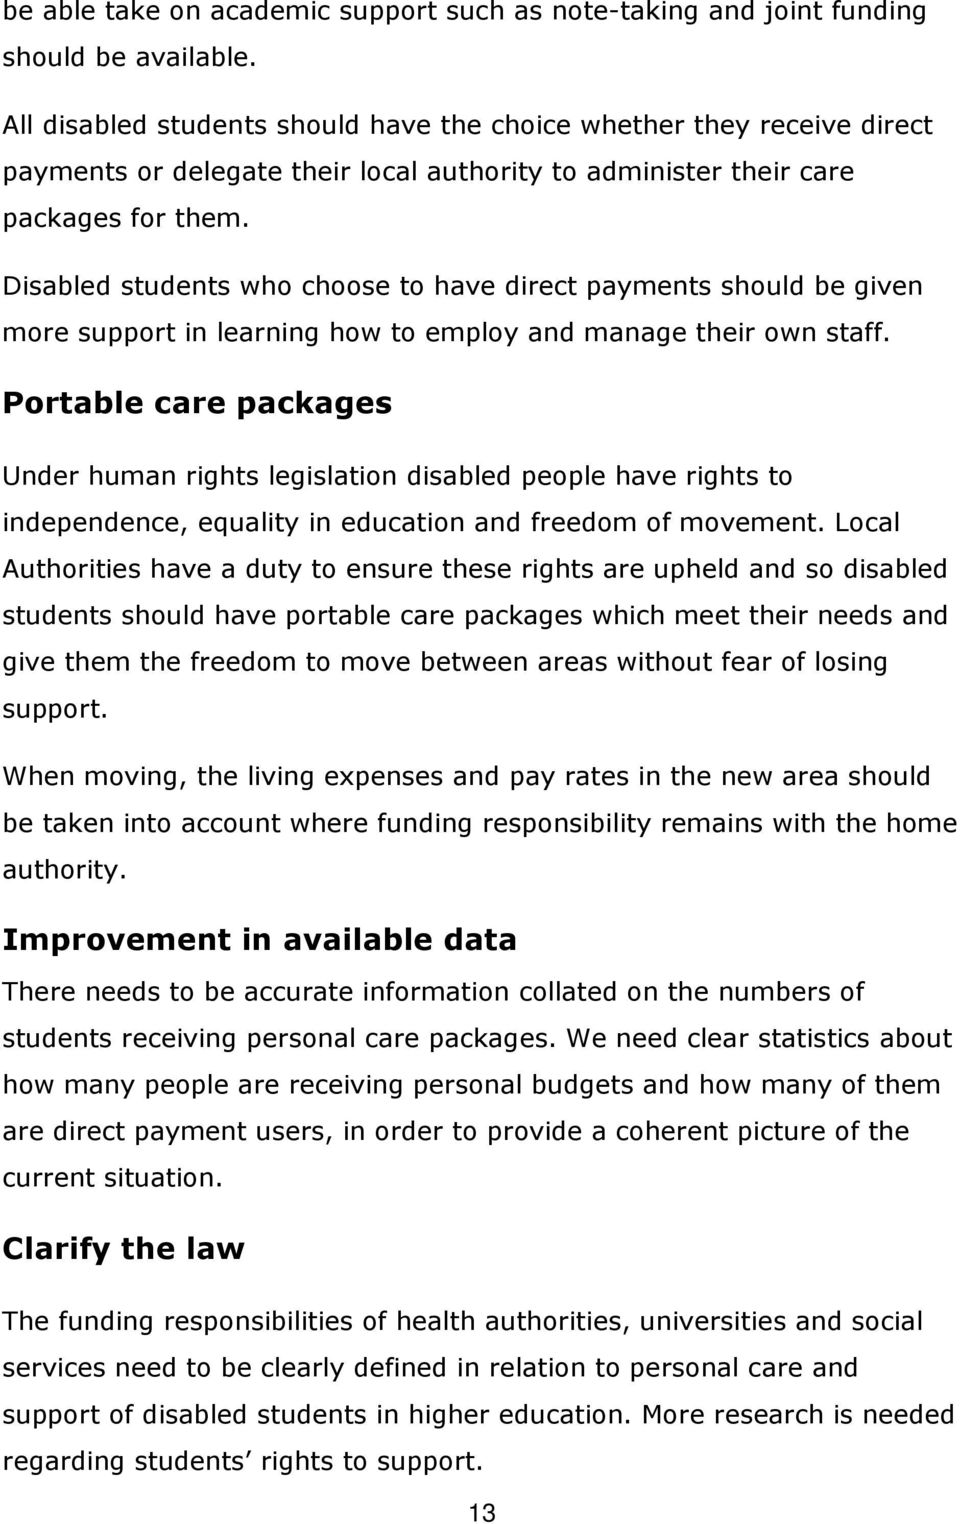 Disabled students who choose to have direct payments should be given more support in learning how to employ and manage their own staff.